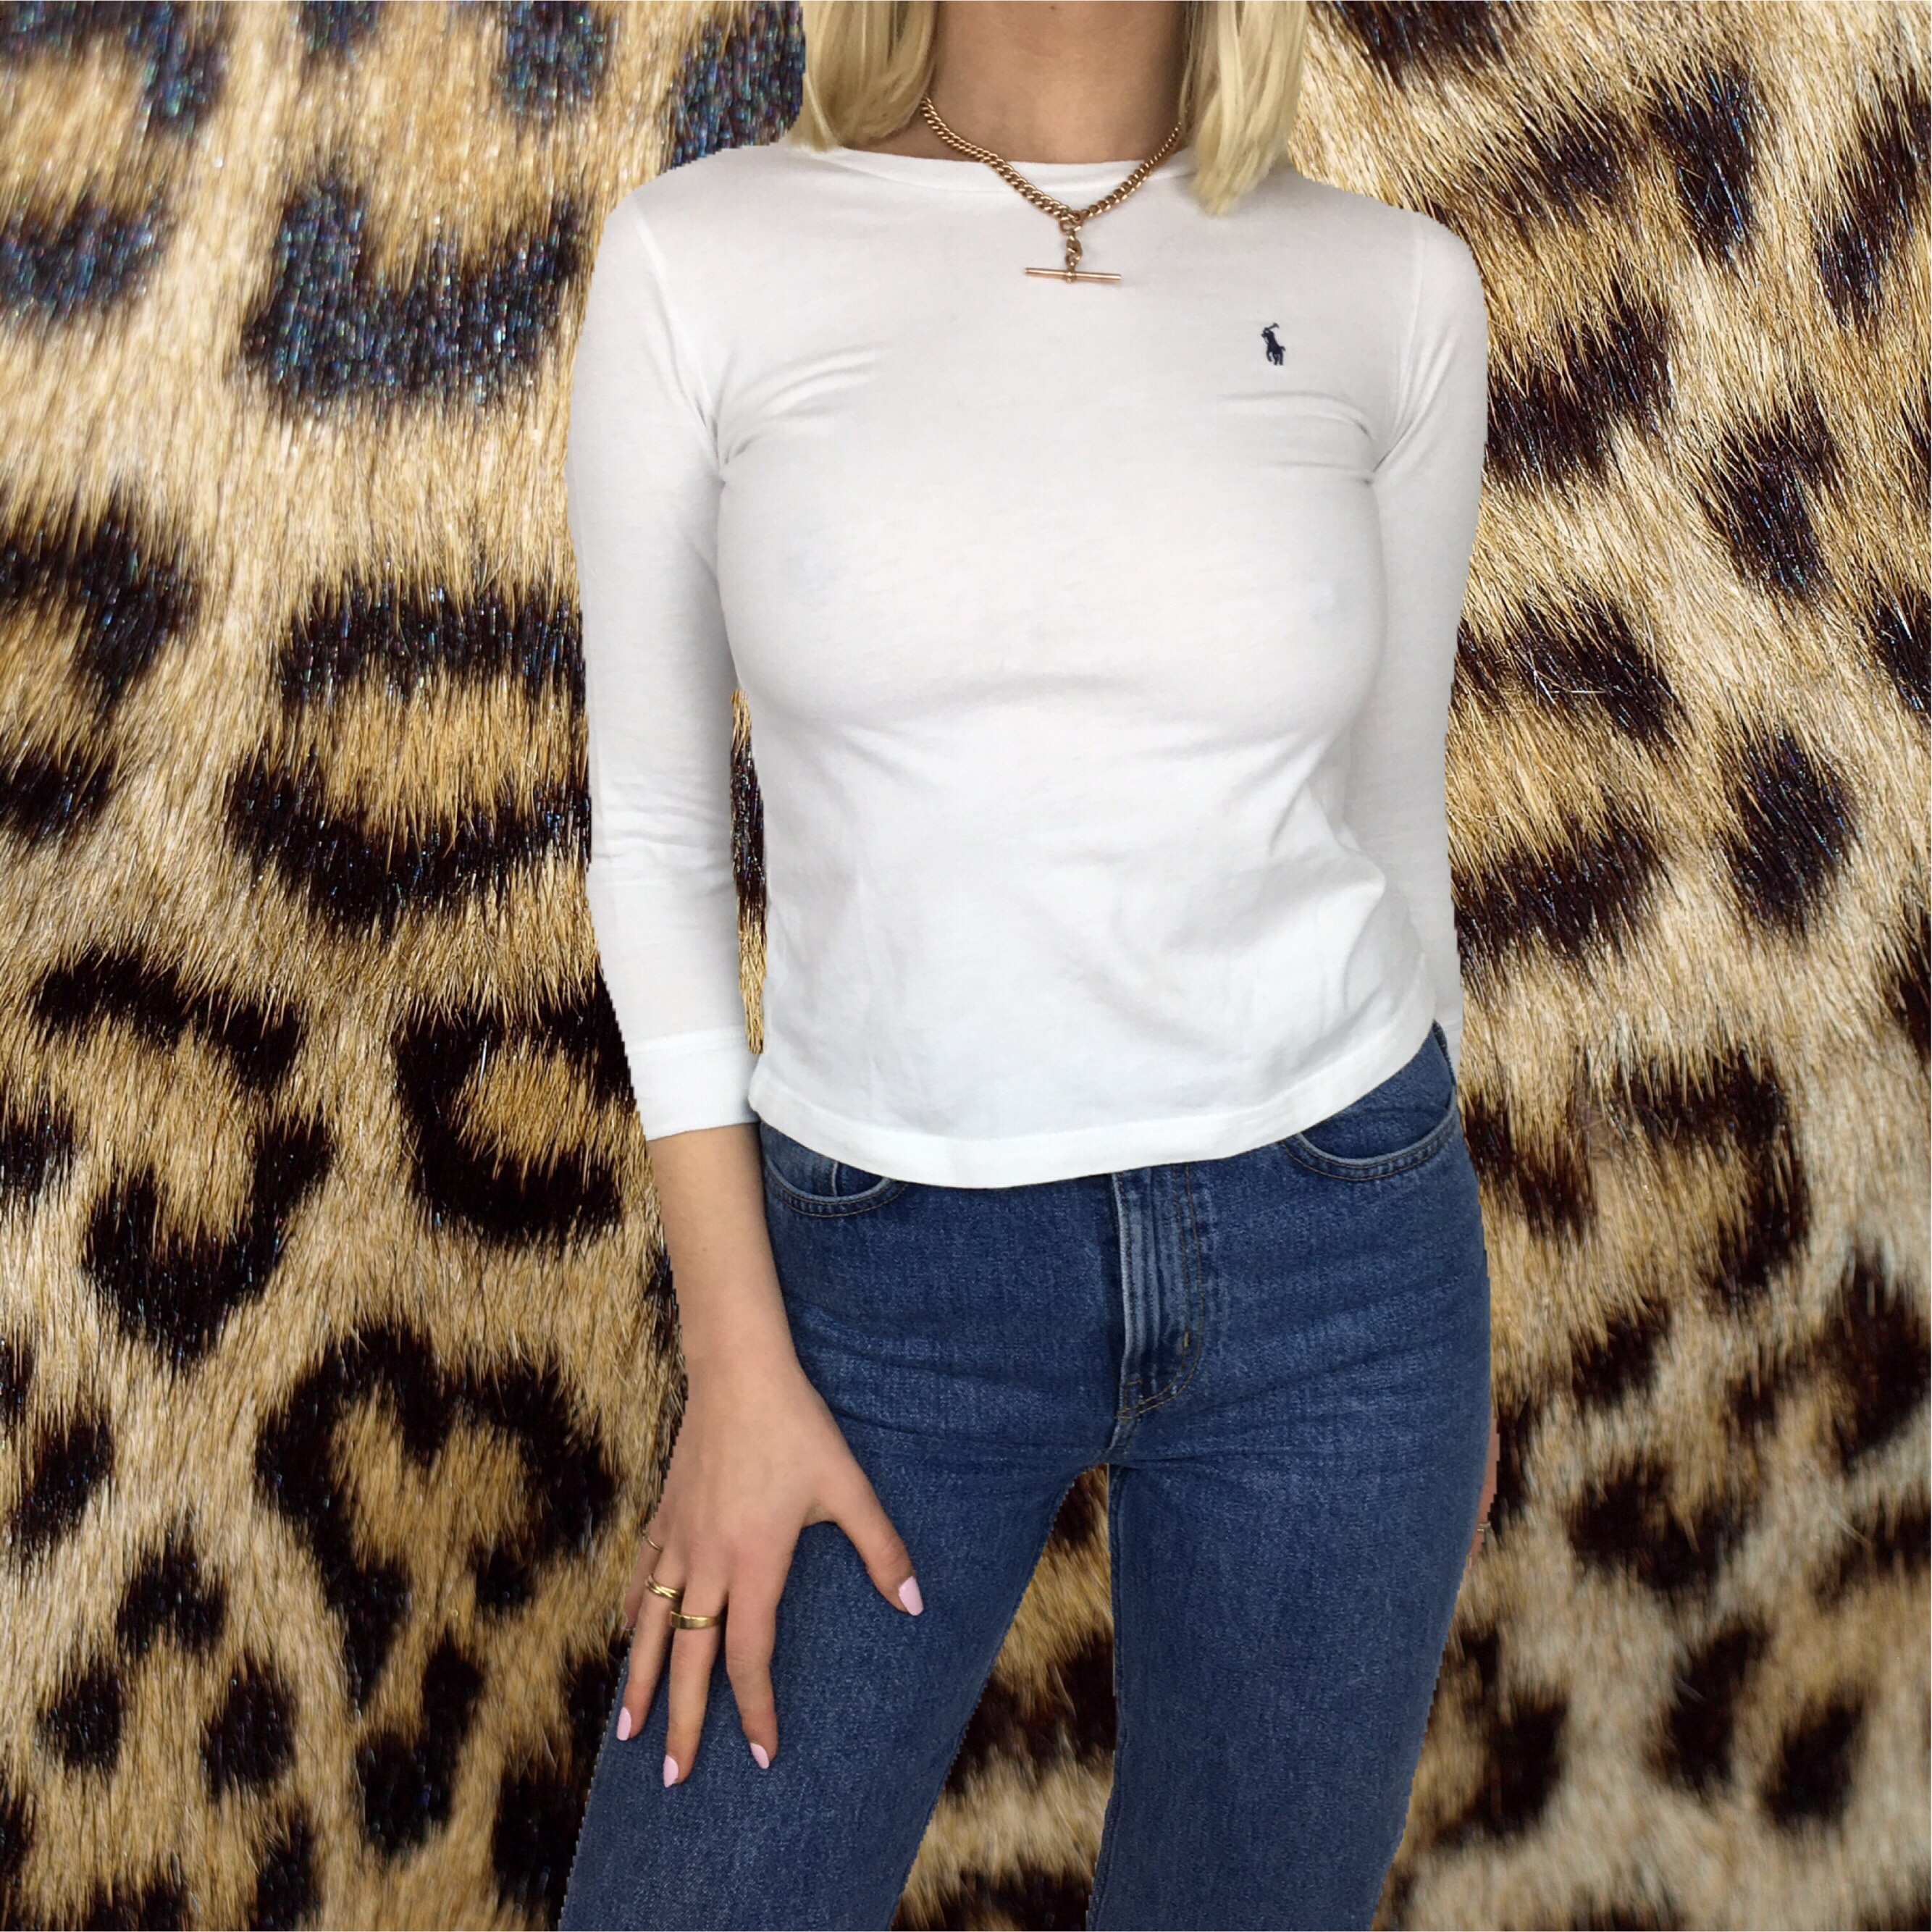 ad5614a9 @affricasjunk. last year. London, United Kingdom. POLO. Lovely vintage  white long sleeved crop top ...